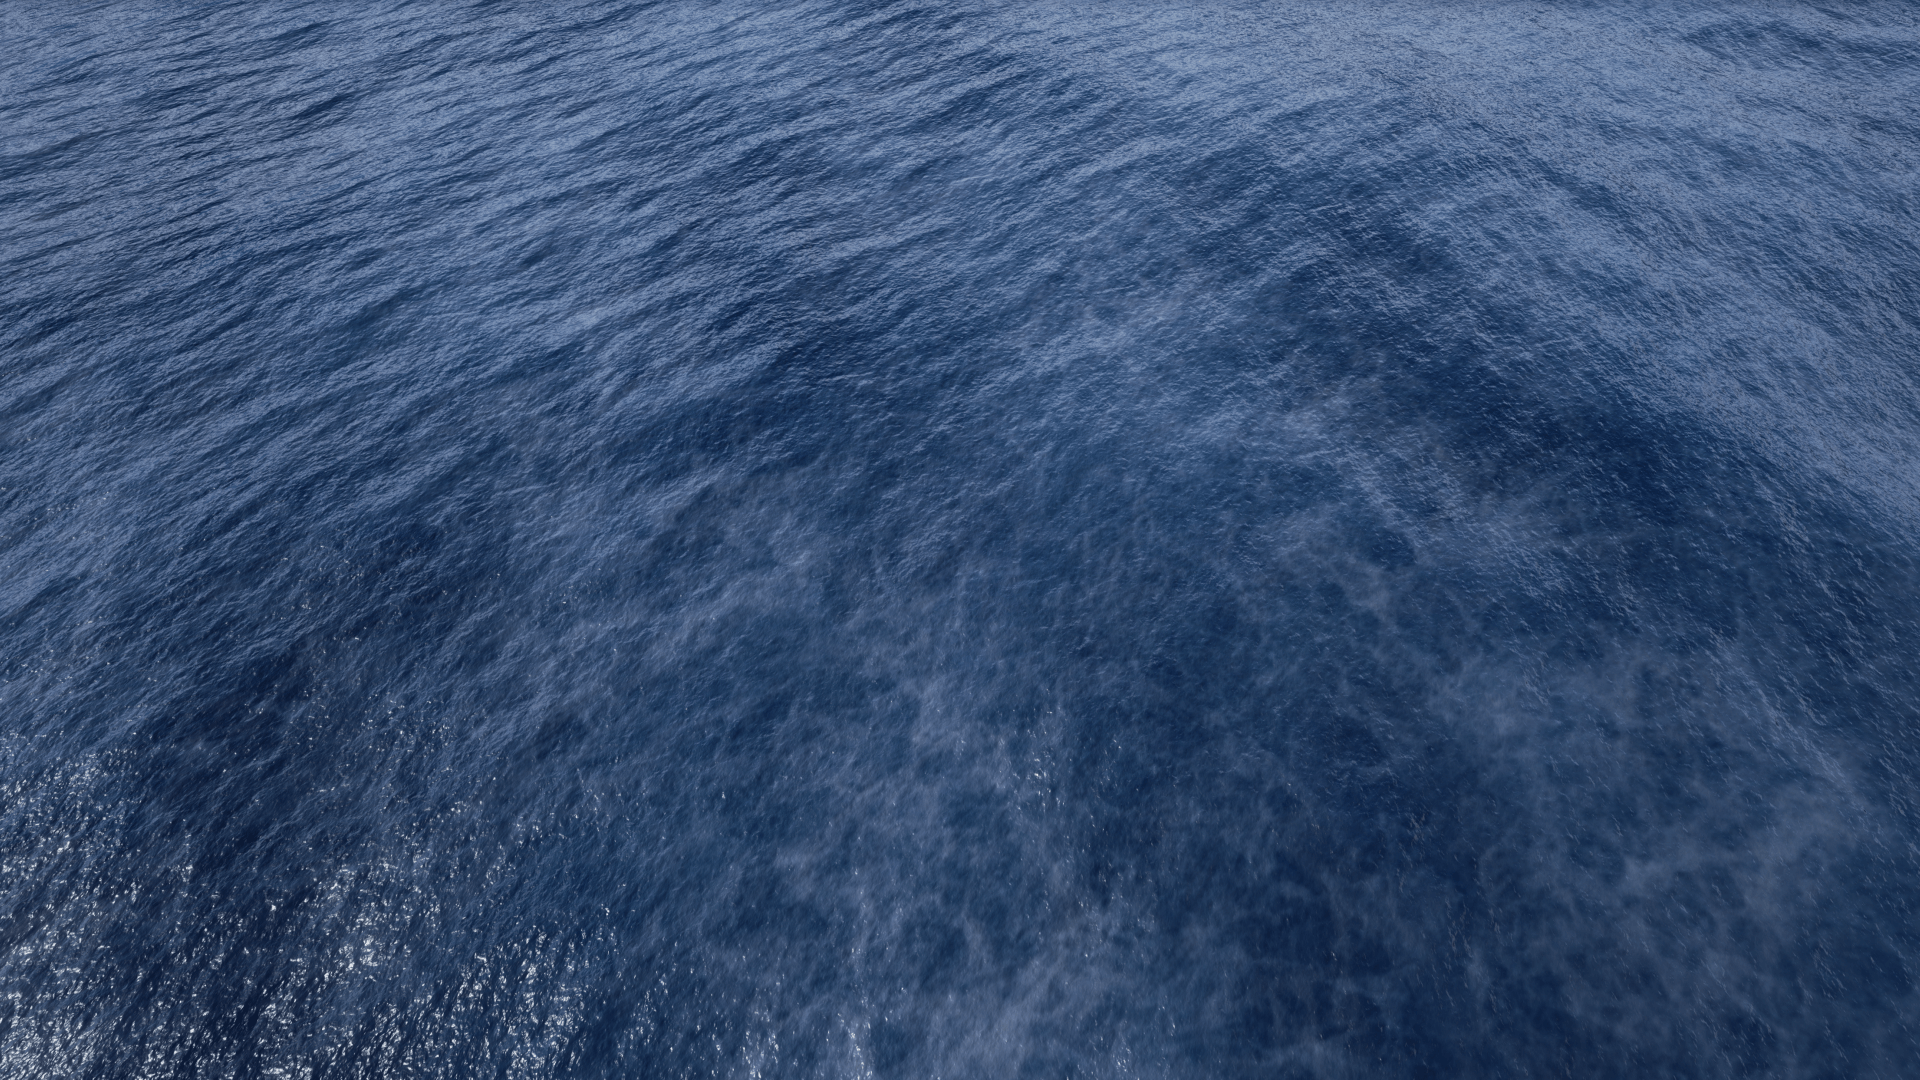 Physical Water Surface by Theokoles in Blueprints - UE4 Marketplace